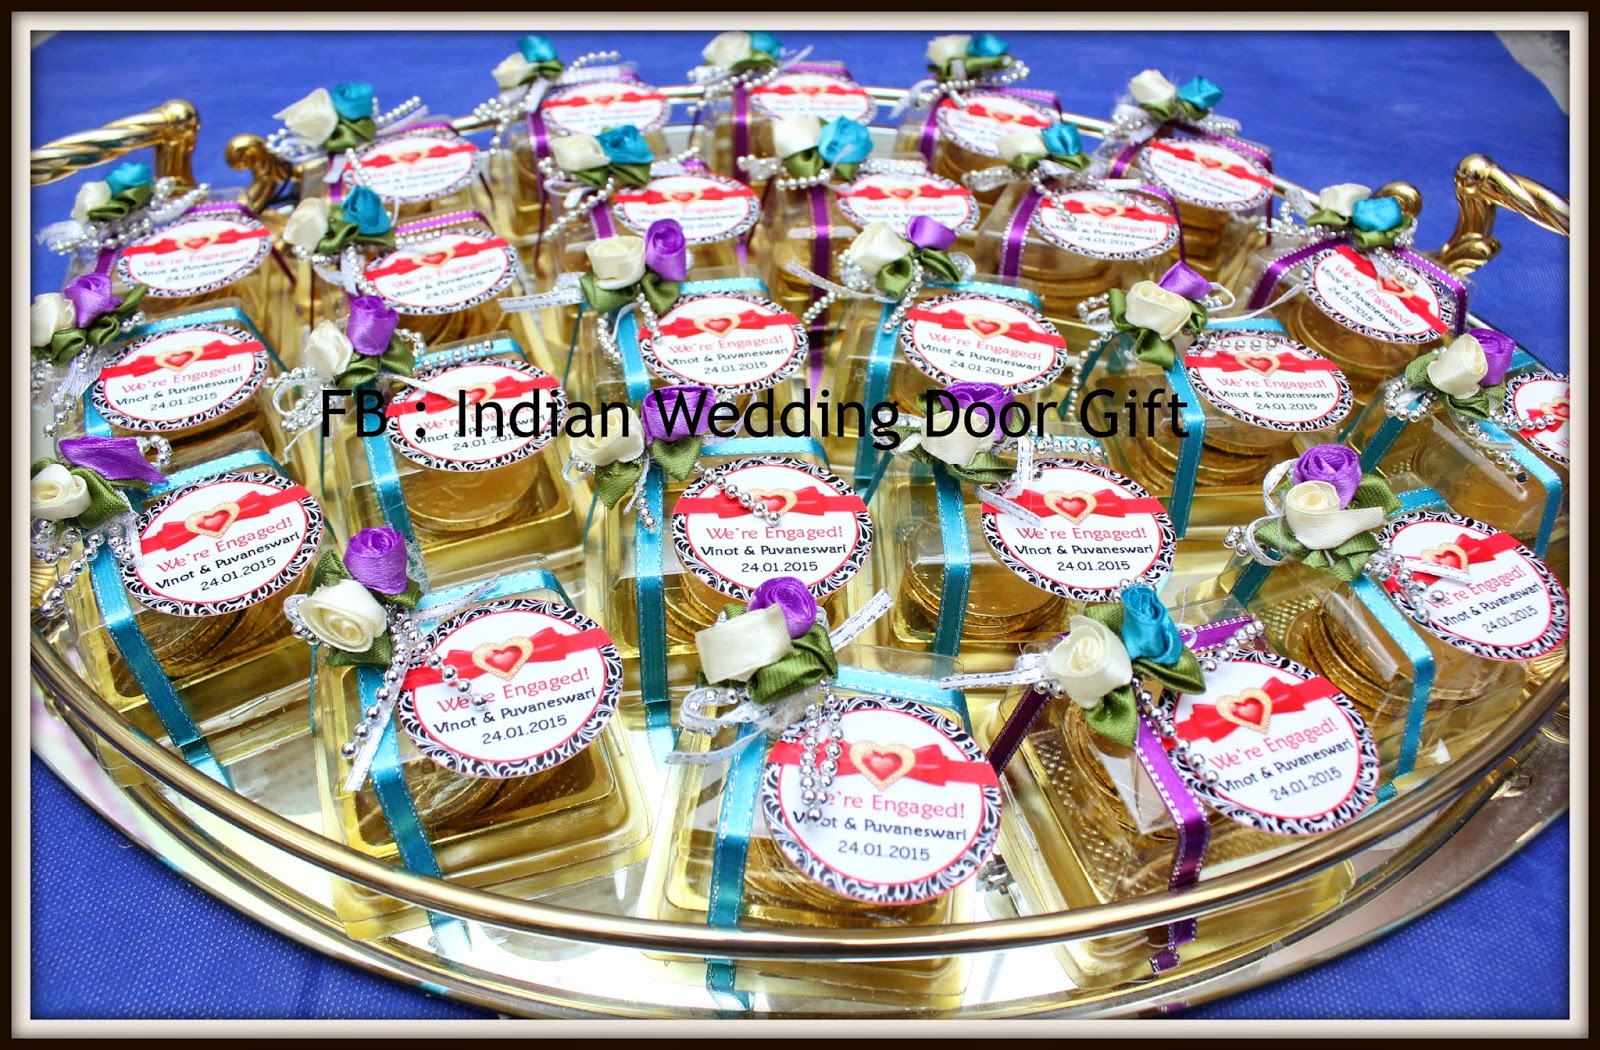 Indian wedding door gift may 2015 for Idea door gift jimat